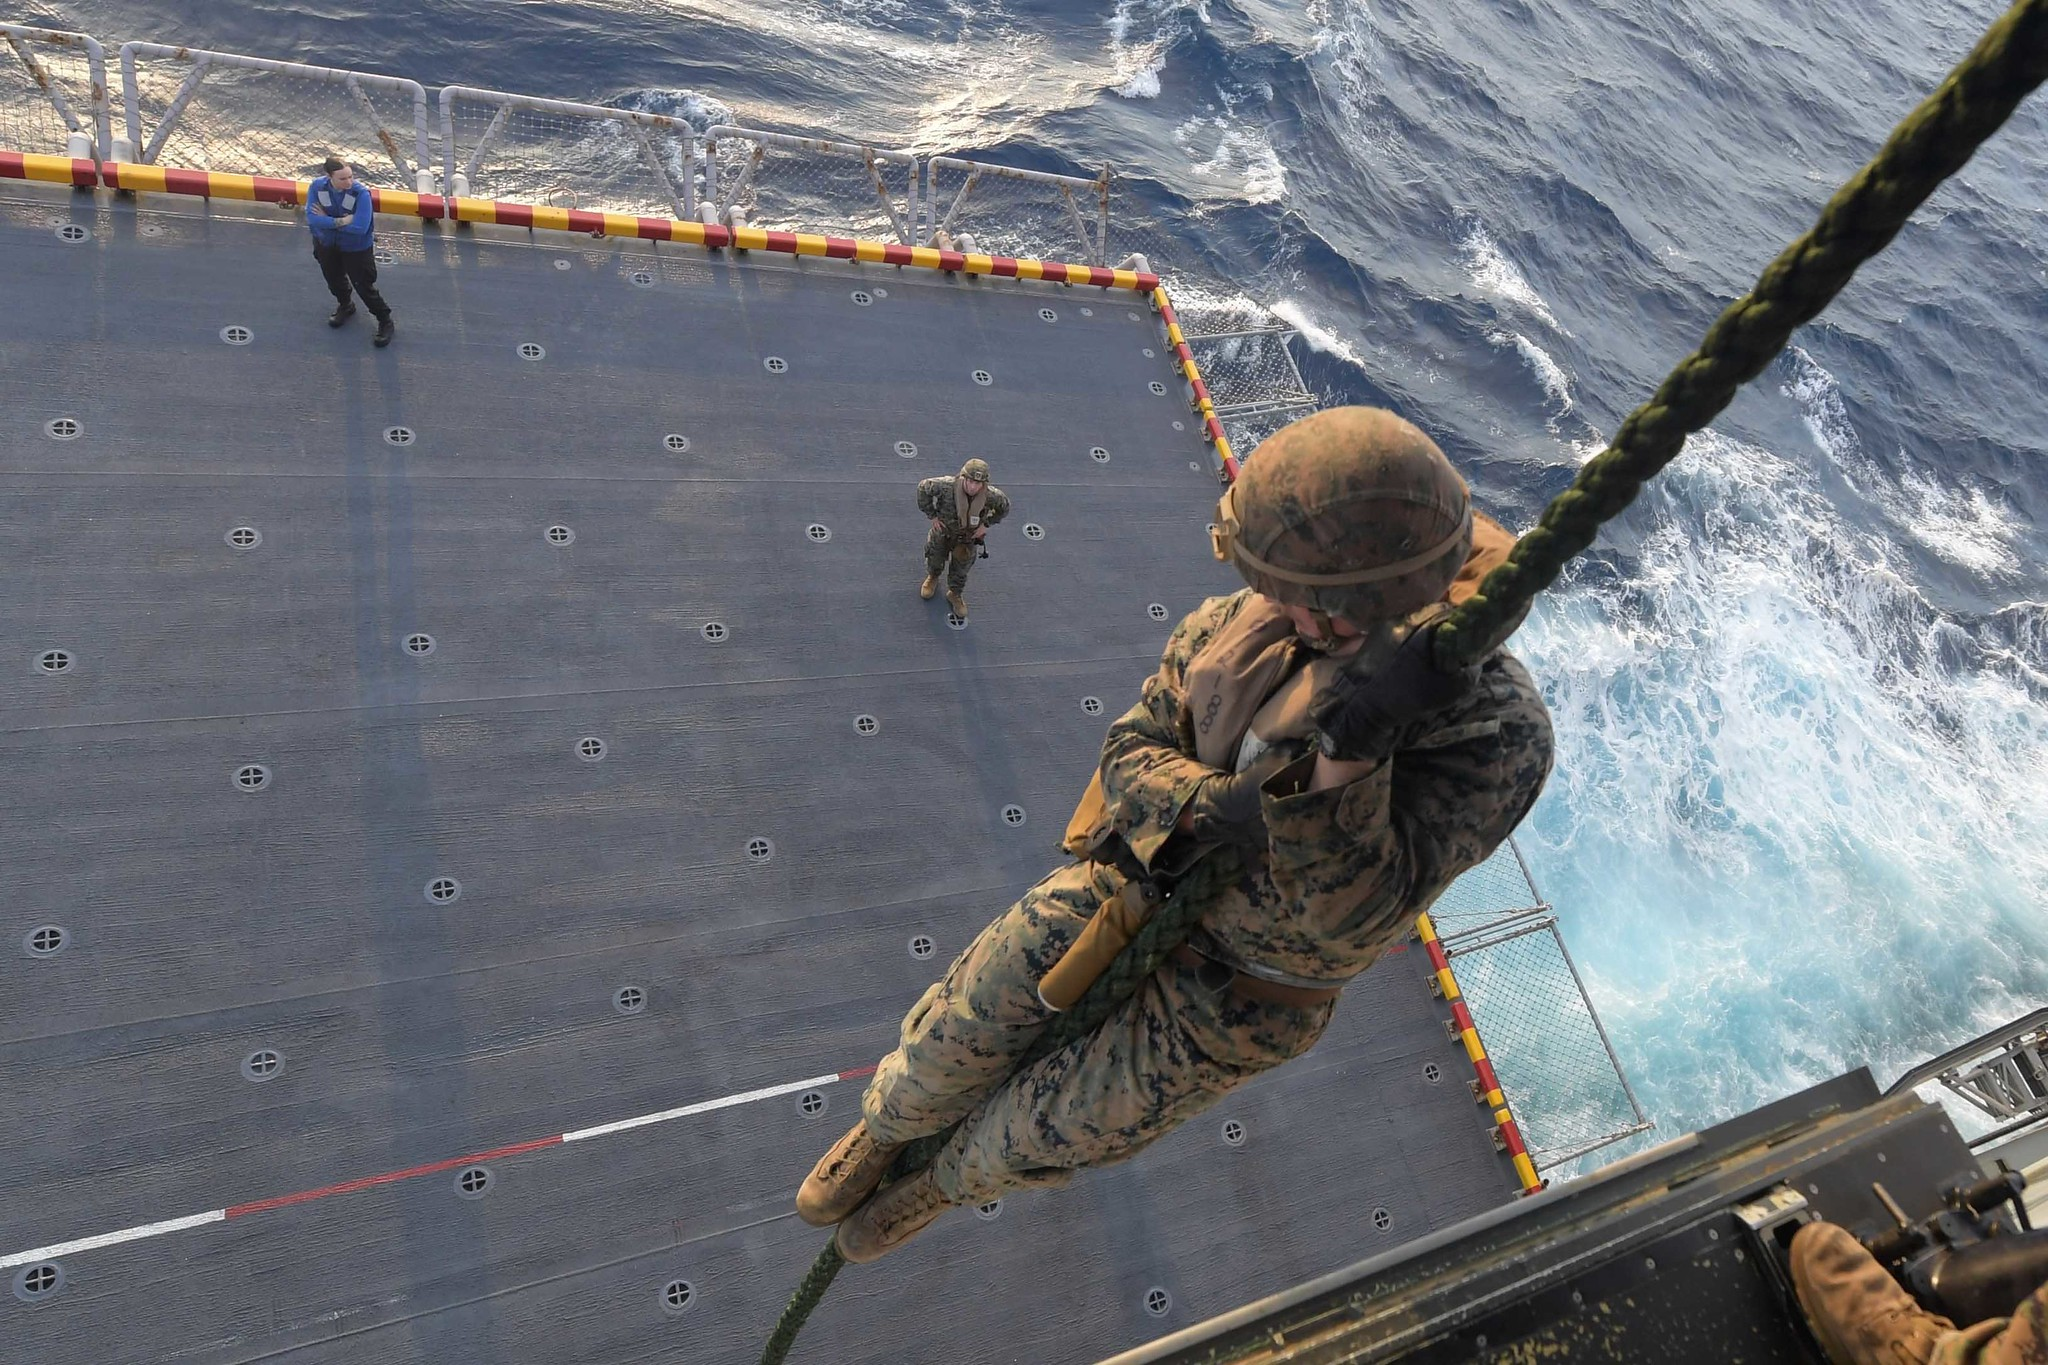 Marines perform a fast rope exercise on the port aircraft elevator of the amphibious assault ship USS America (LHA 6) on Feb. 18, 2020, in the South China Sea. (Mass Communication Specialist Seaman Jomark A. Almazan/Navy)